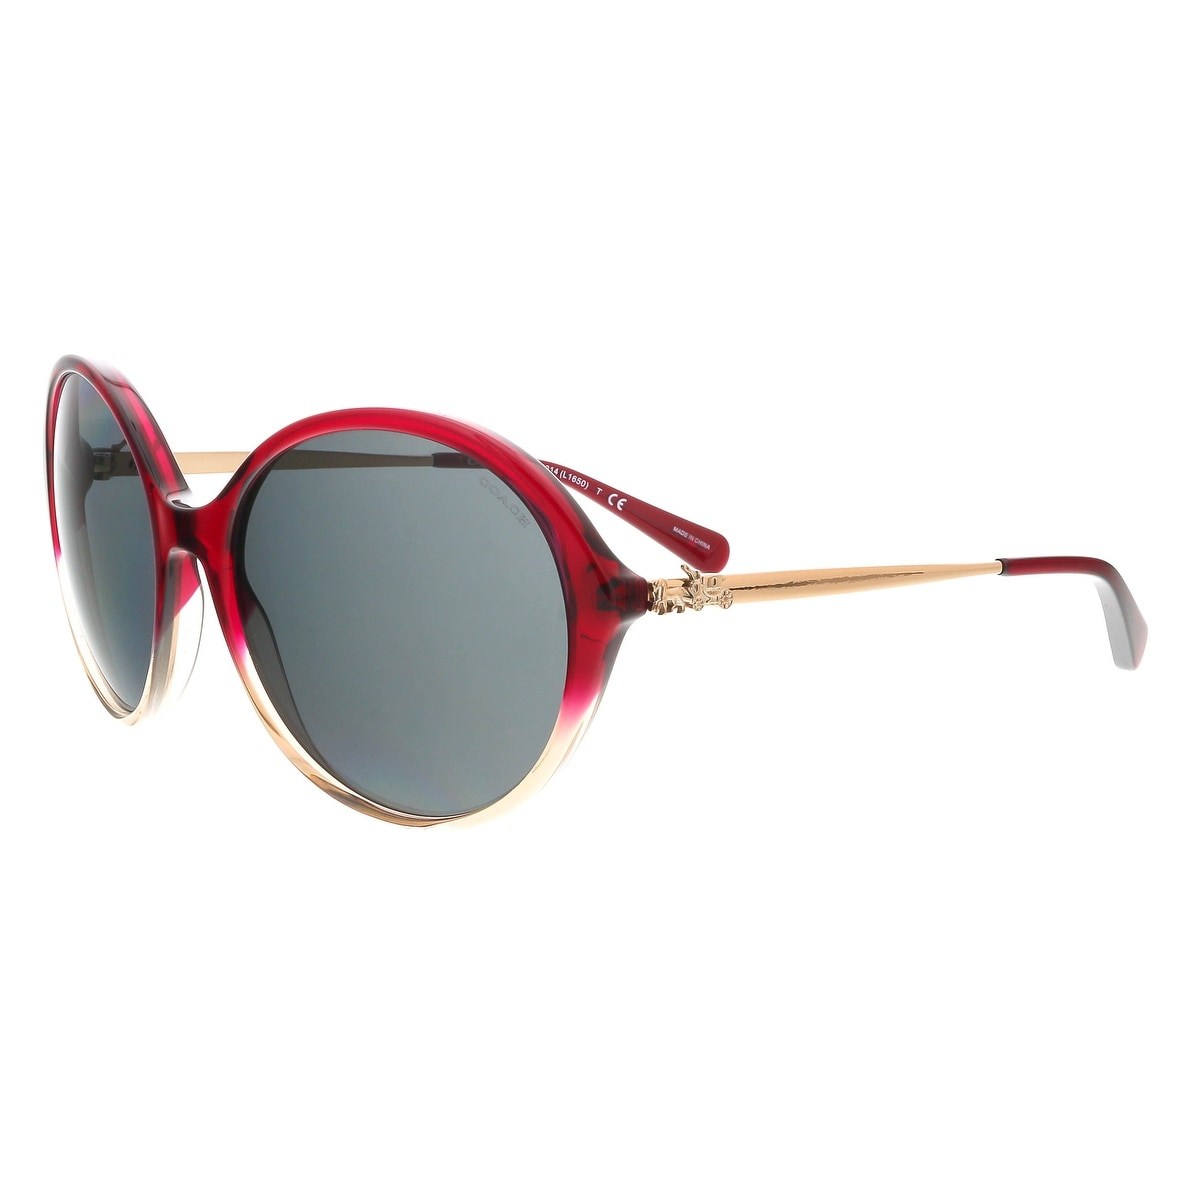 dab8467a73707 New Products - Trusted Merchant Sunglasses